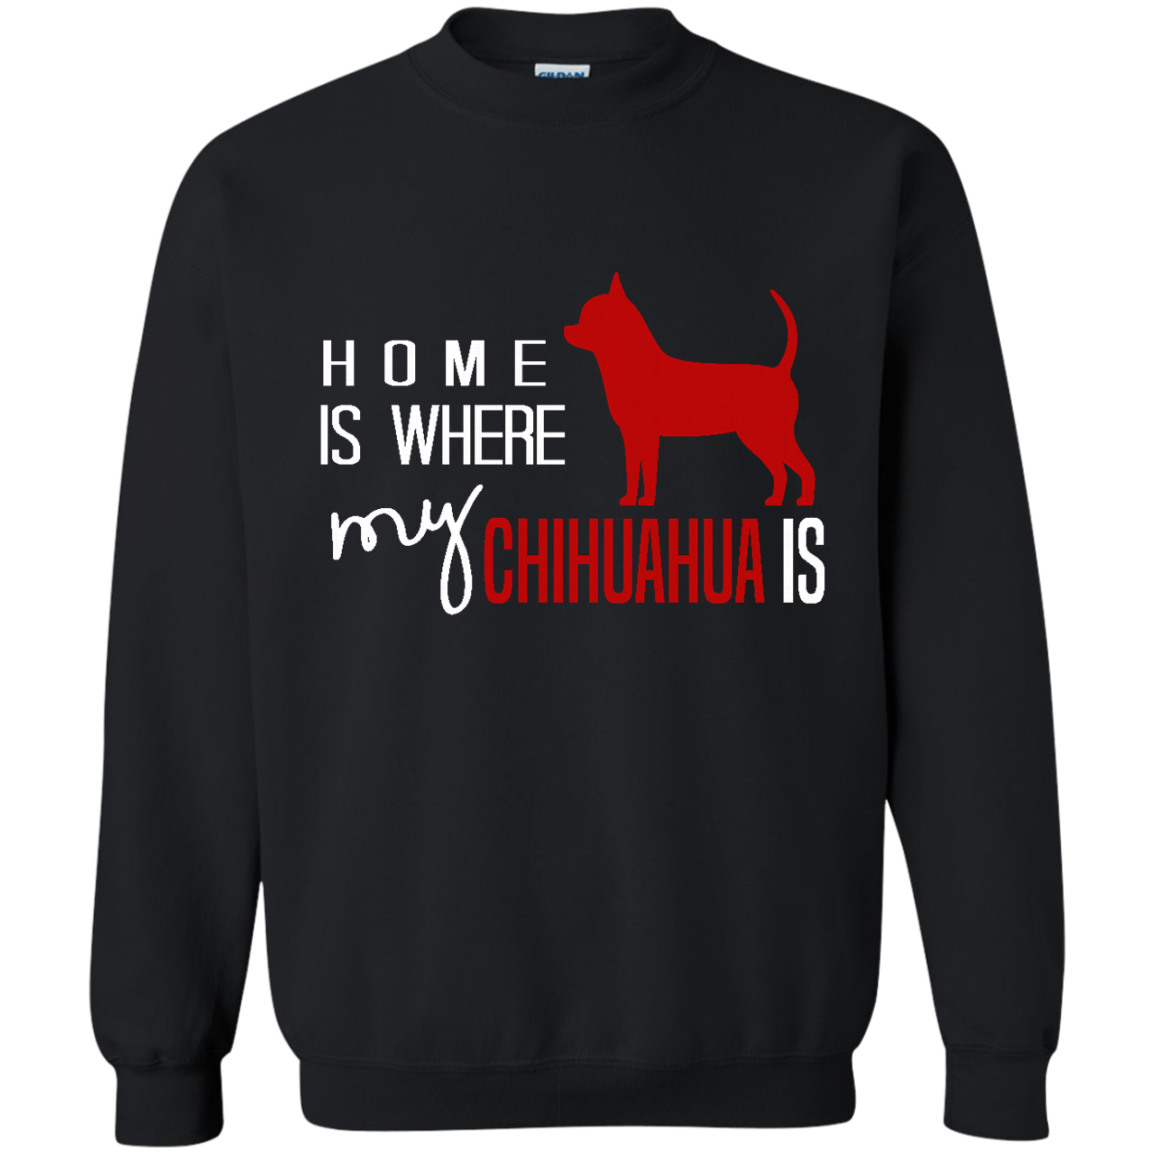 Chihuahua Dog Sweatshirt Home is Where My Chihuahua Is like as a gift for who loves Chihuahua  yourself  friends on birthday  christmas or Occasions